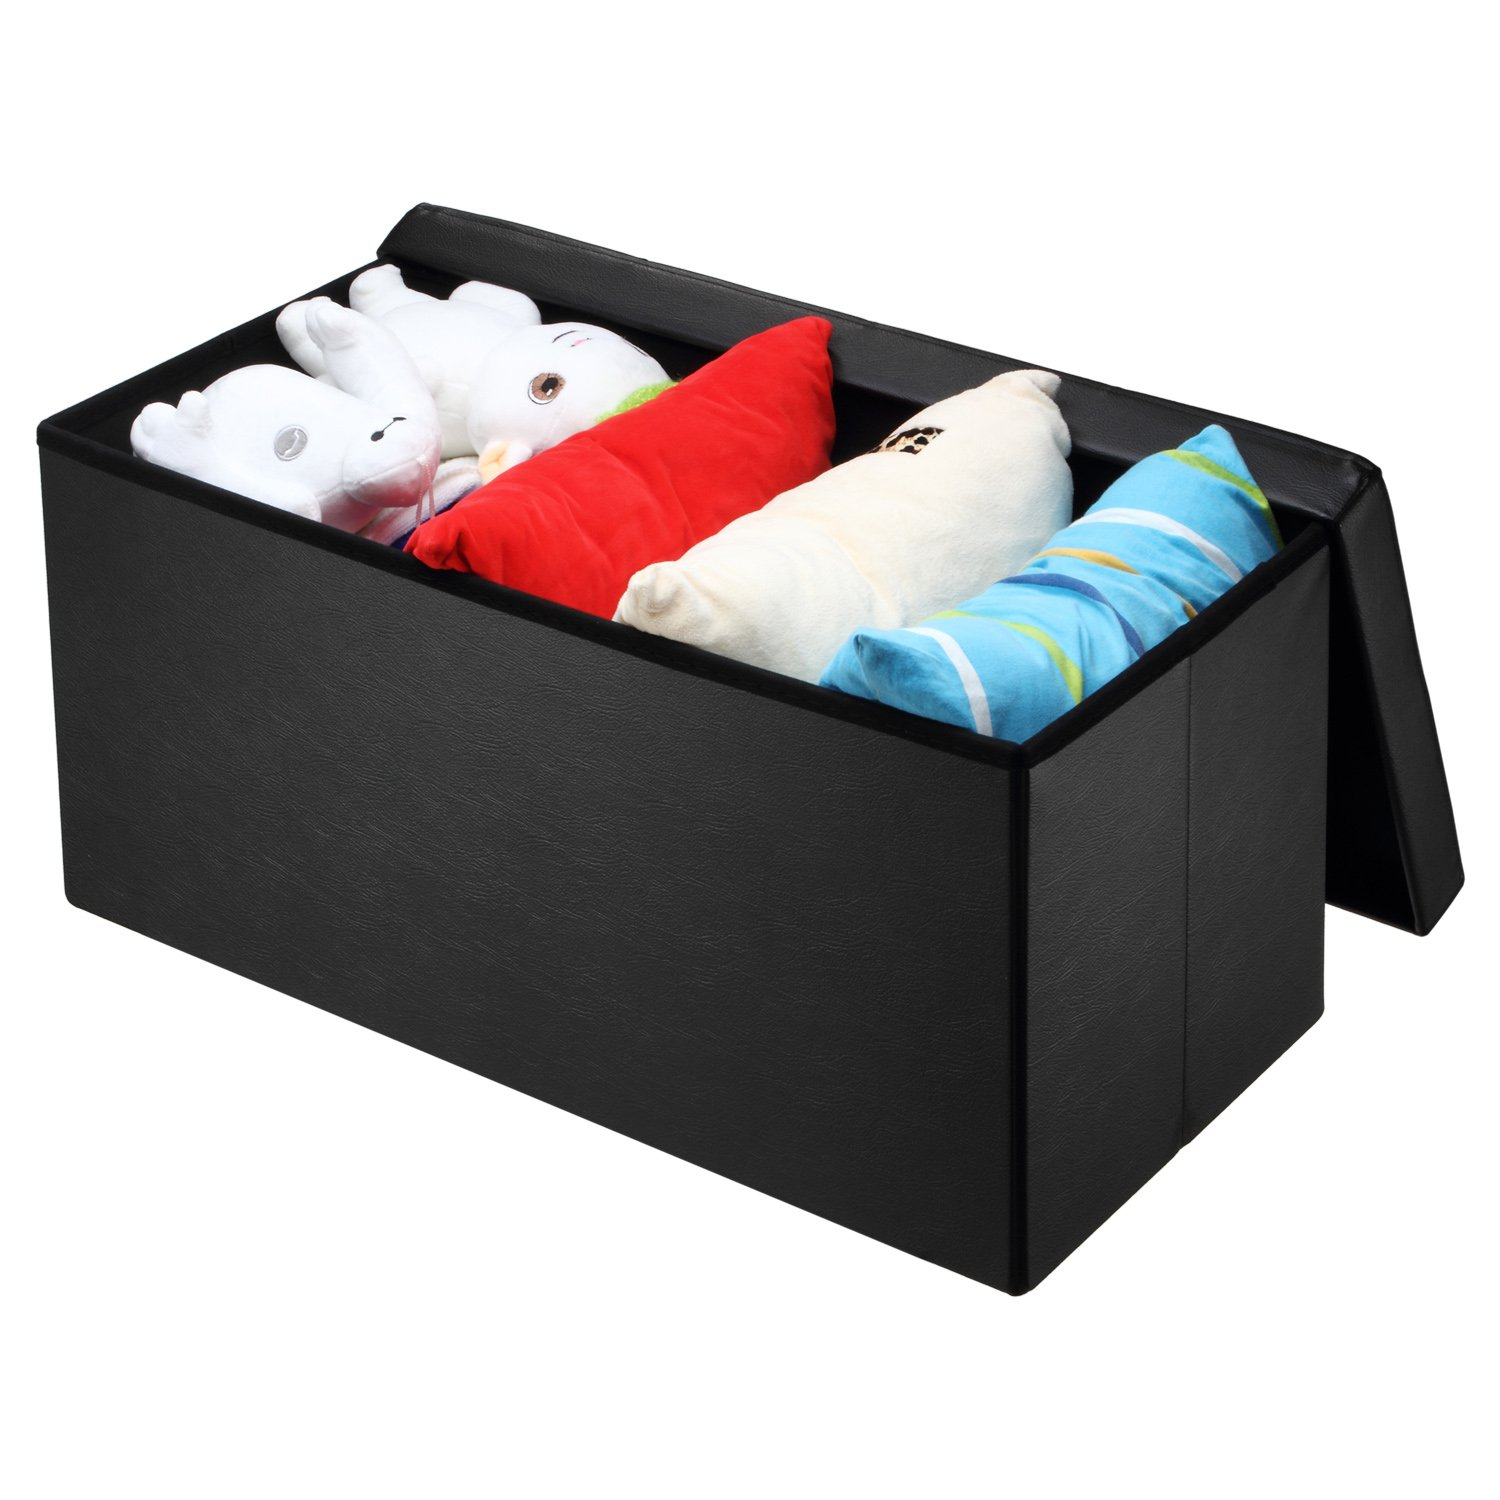 Ollieroo Faux Leather Folding Storage Ottoman Bench Foot Rest Stool Seat Black 30''X15''X15'' by Ollieroo (Image #3)